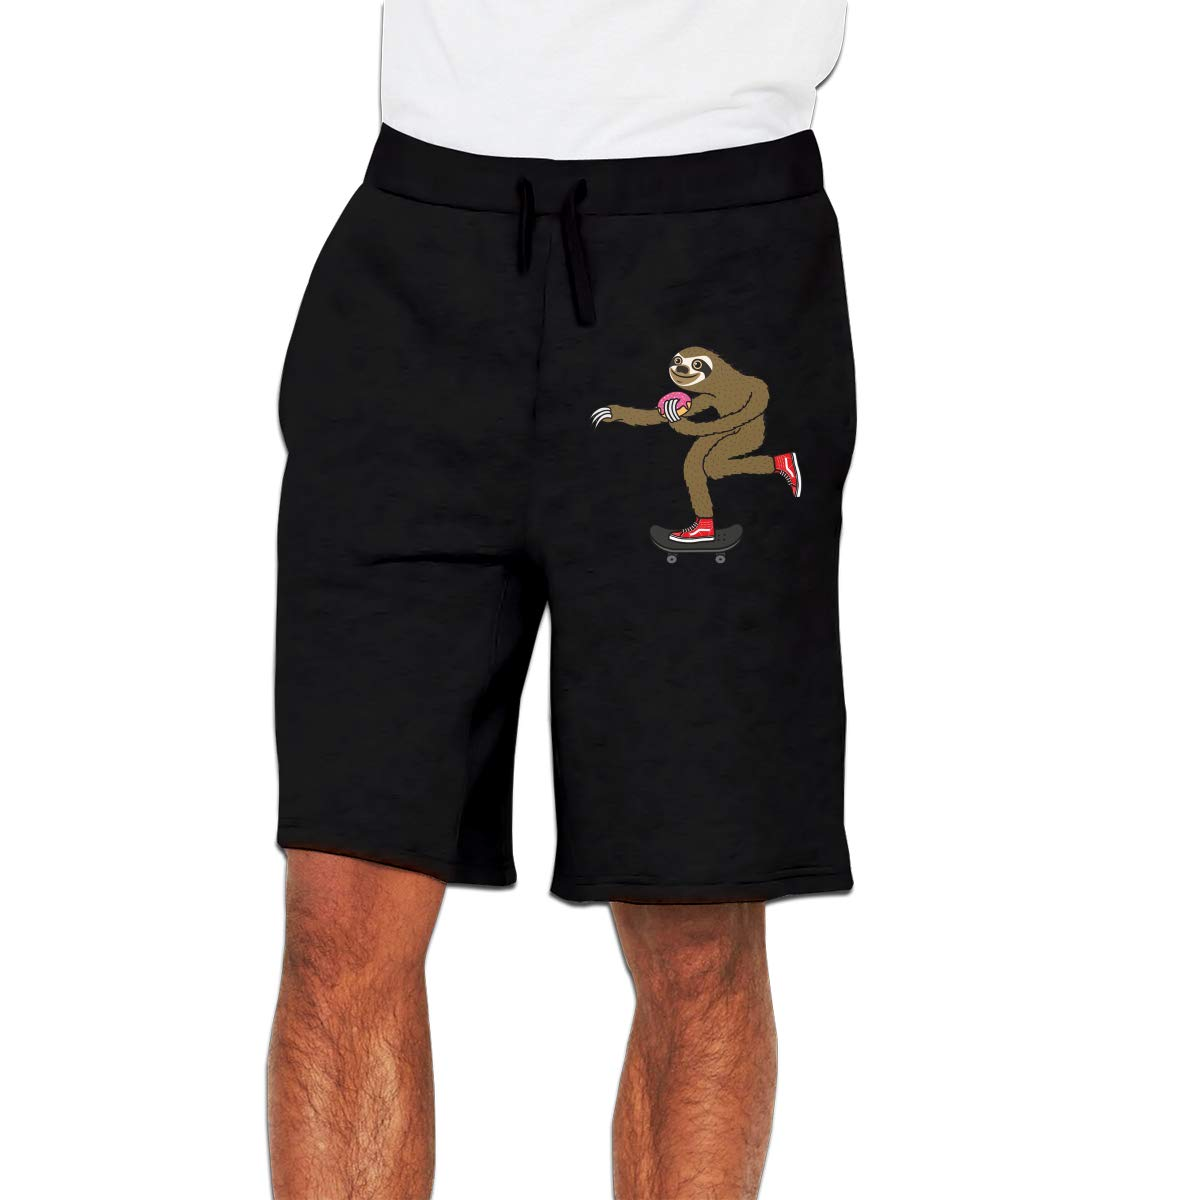 Mens Boardshorts Skater Sloth and The Donuts Patterned Swim Trunks